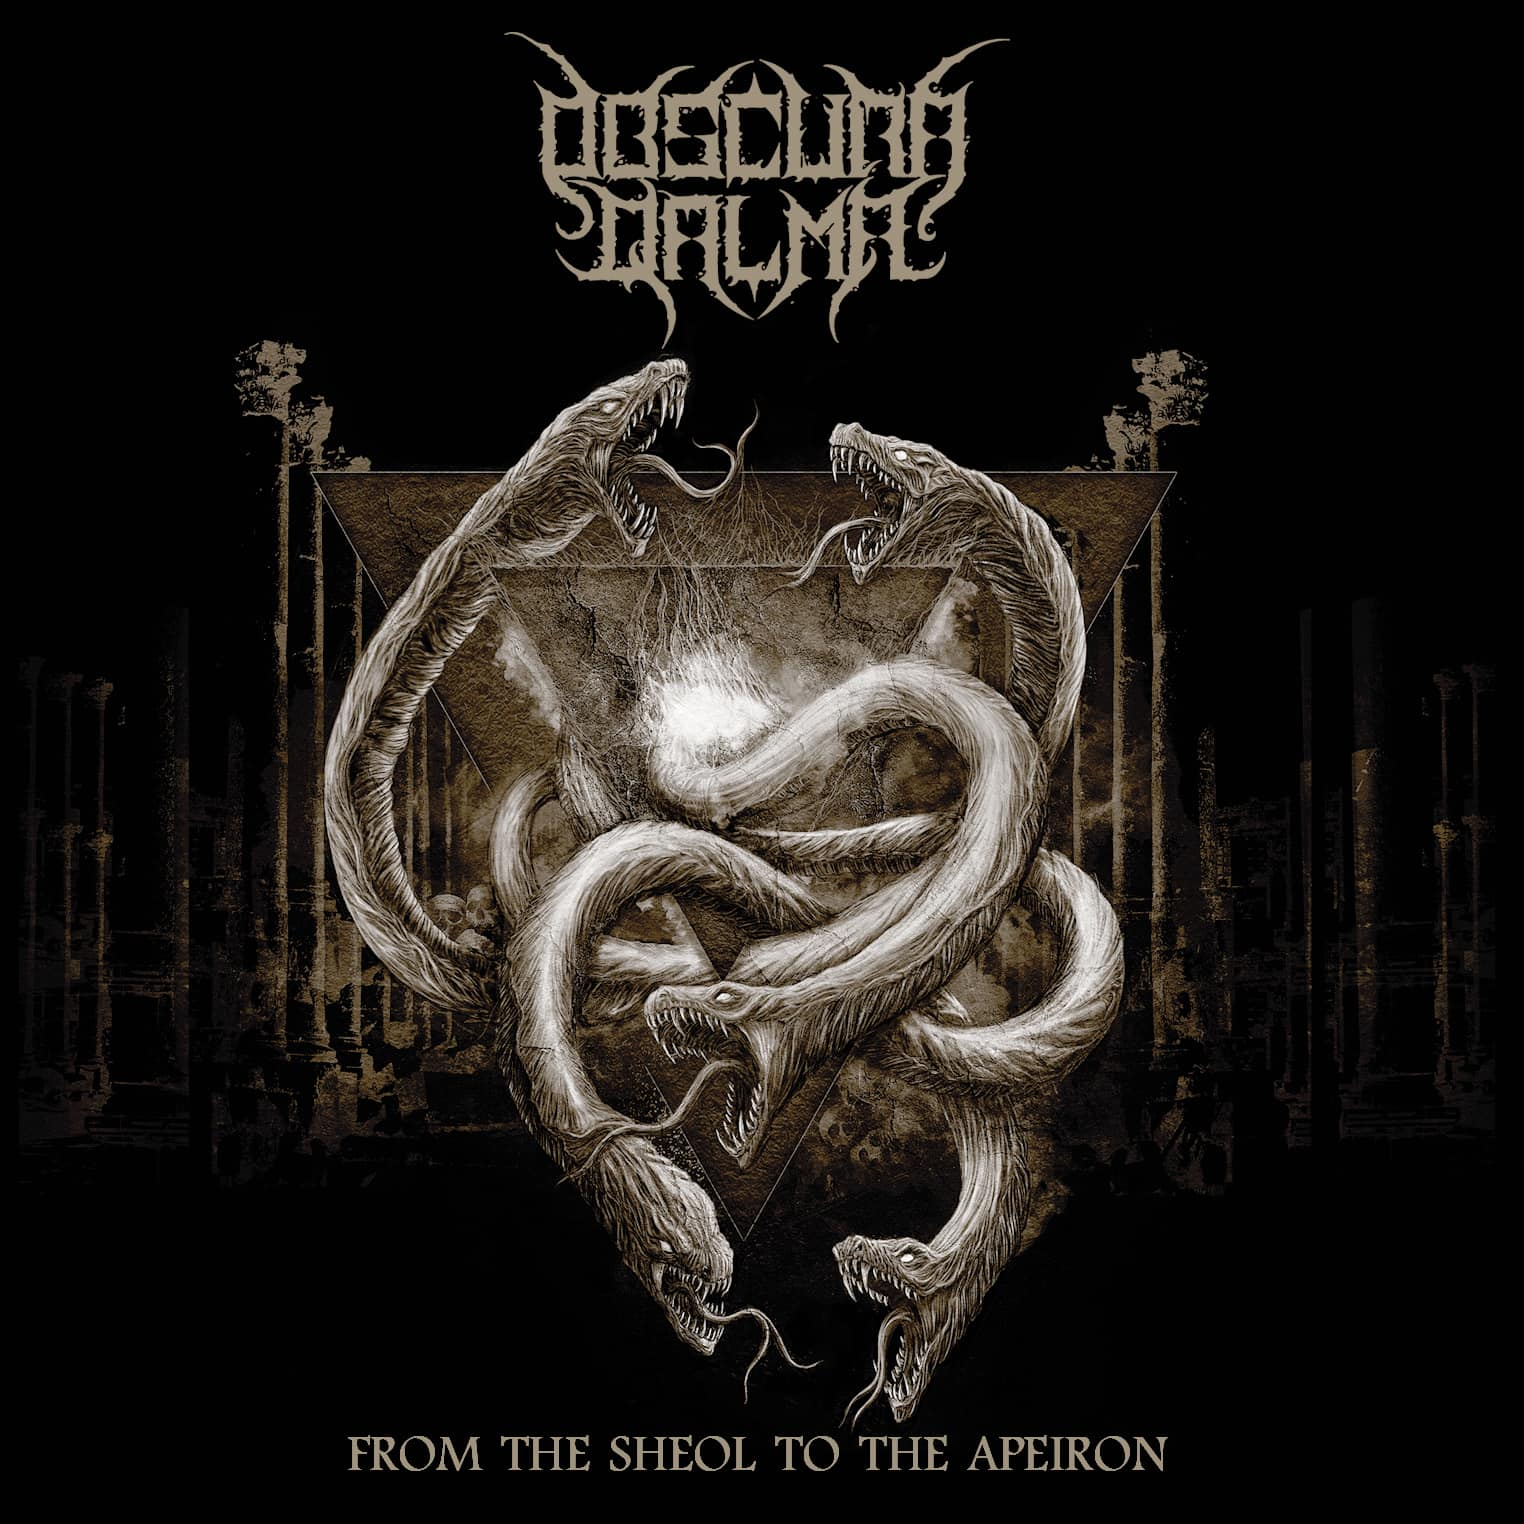 OBSCURA QALMA-FROM THE SHEOL TO THE APEIRON-COVER ARTWORK-NESTOR AVALOS-NESTOR